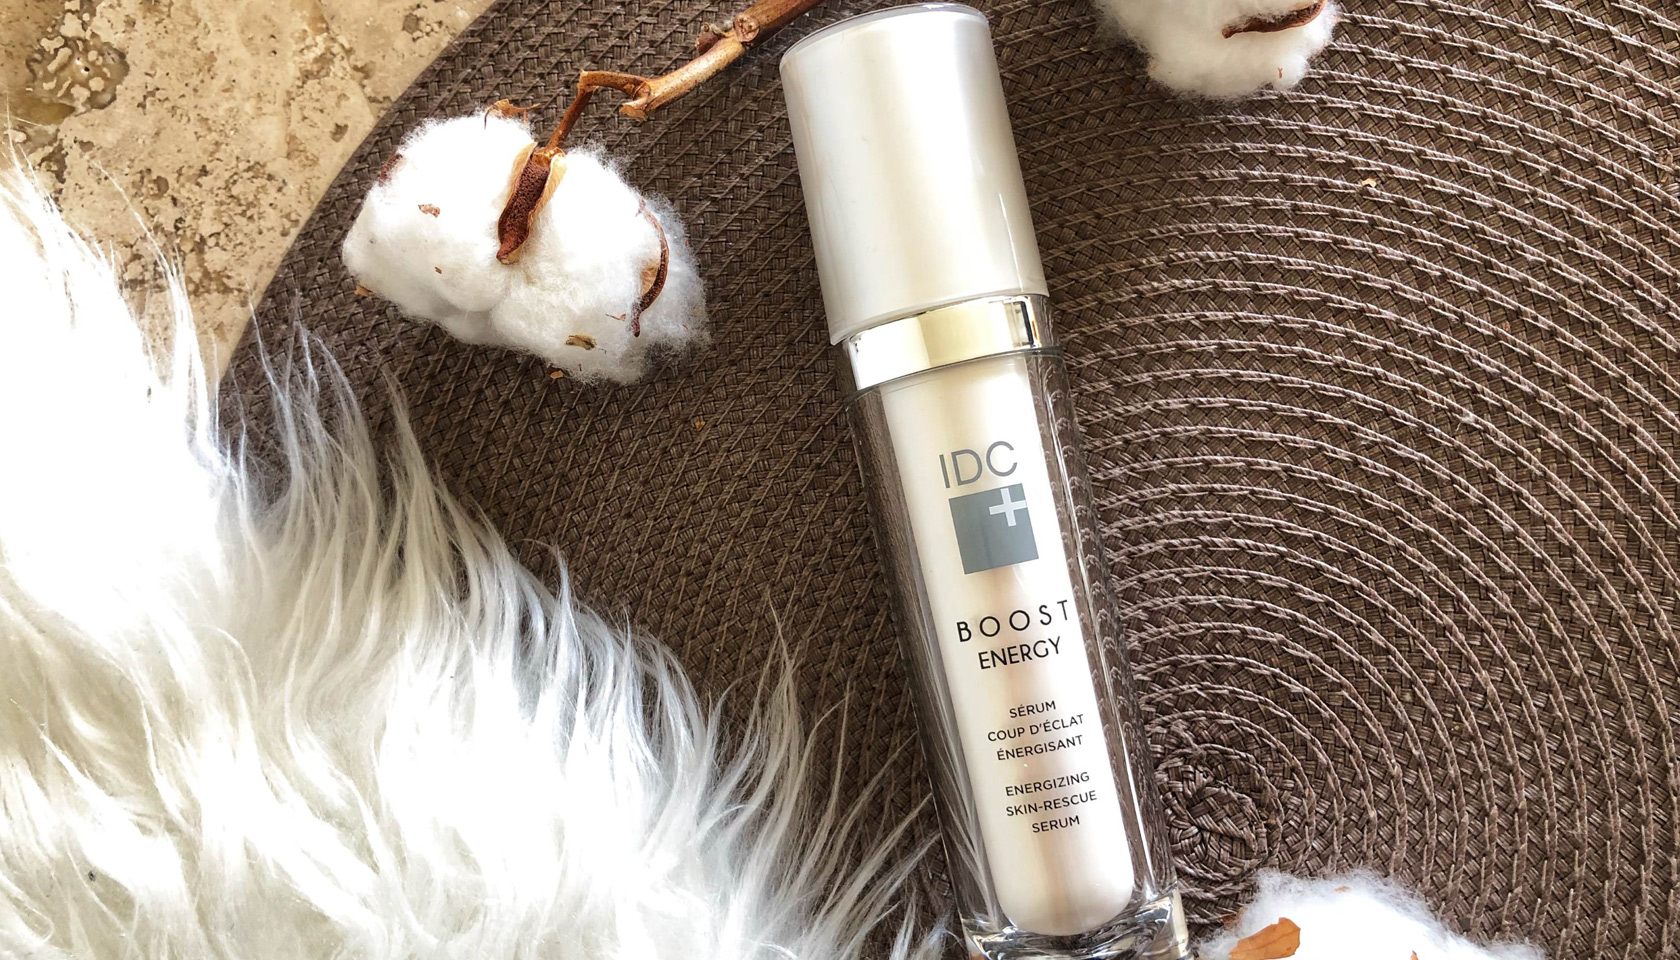 IDC Regen Boost Revitalizing & Energizing Skin-Rescue Serum